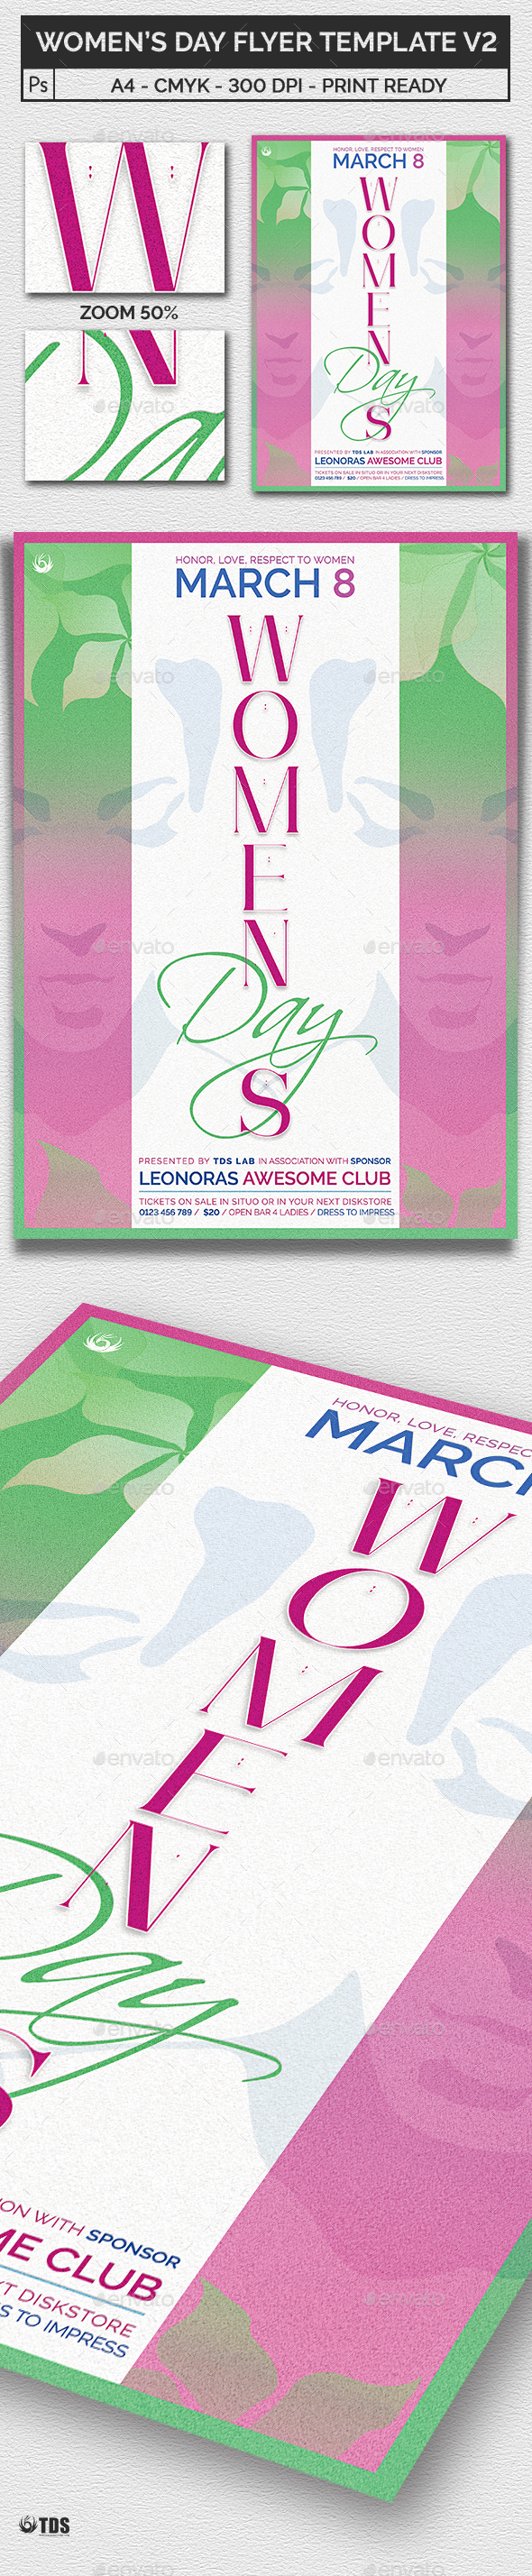 Womens Day Flyer Template V2 - Holidays Events